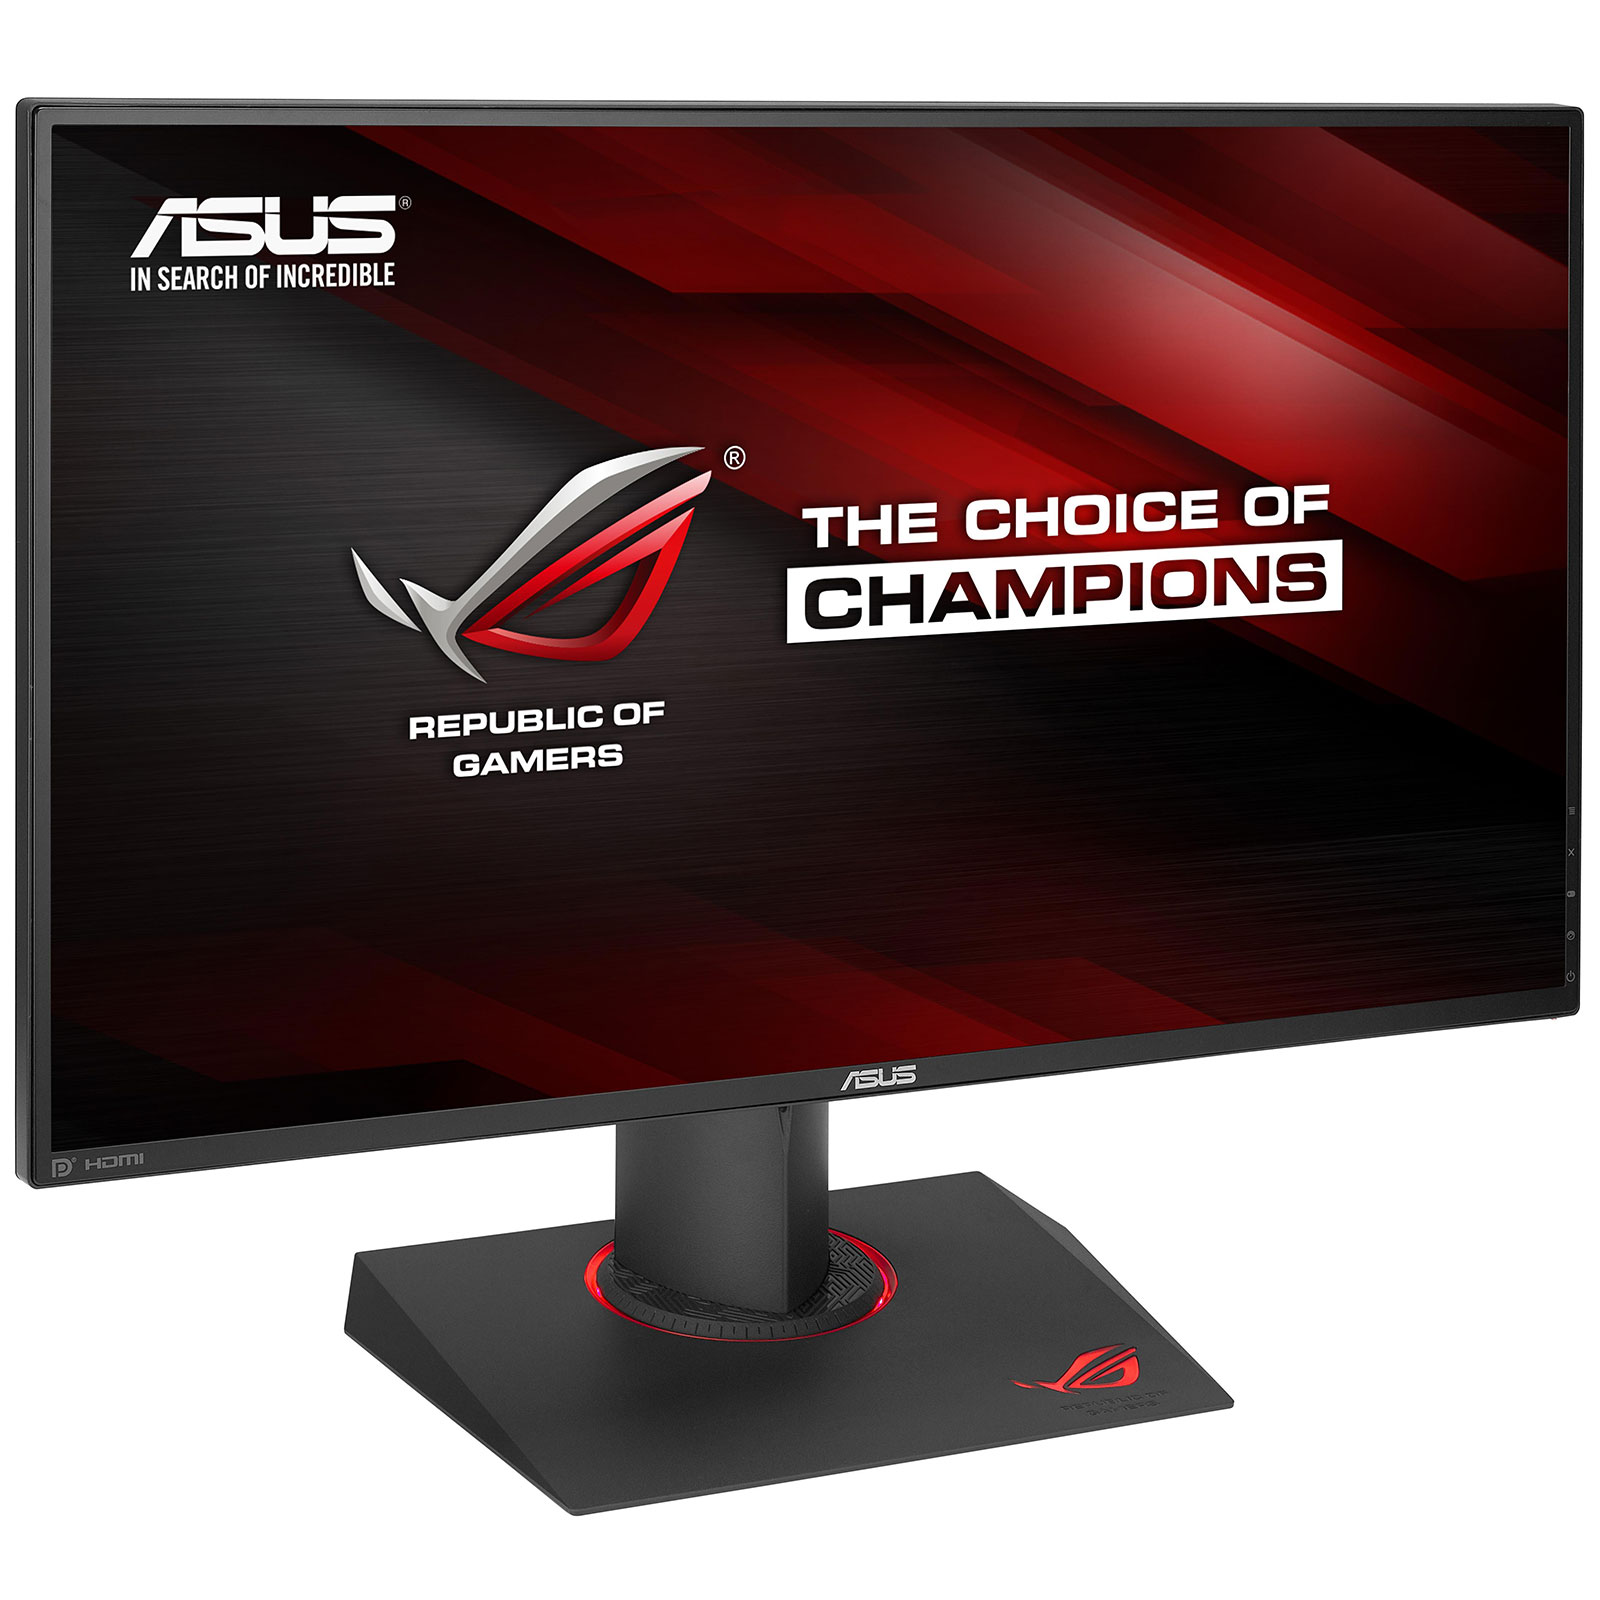 Asus 27 led rog swift pg279q ecran pc asus sur for Ecran dalle ips pour la photo